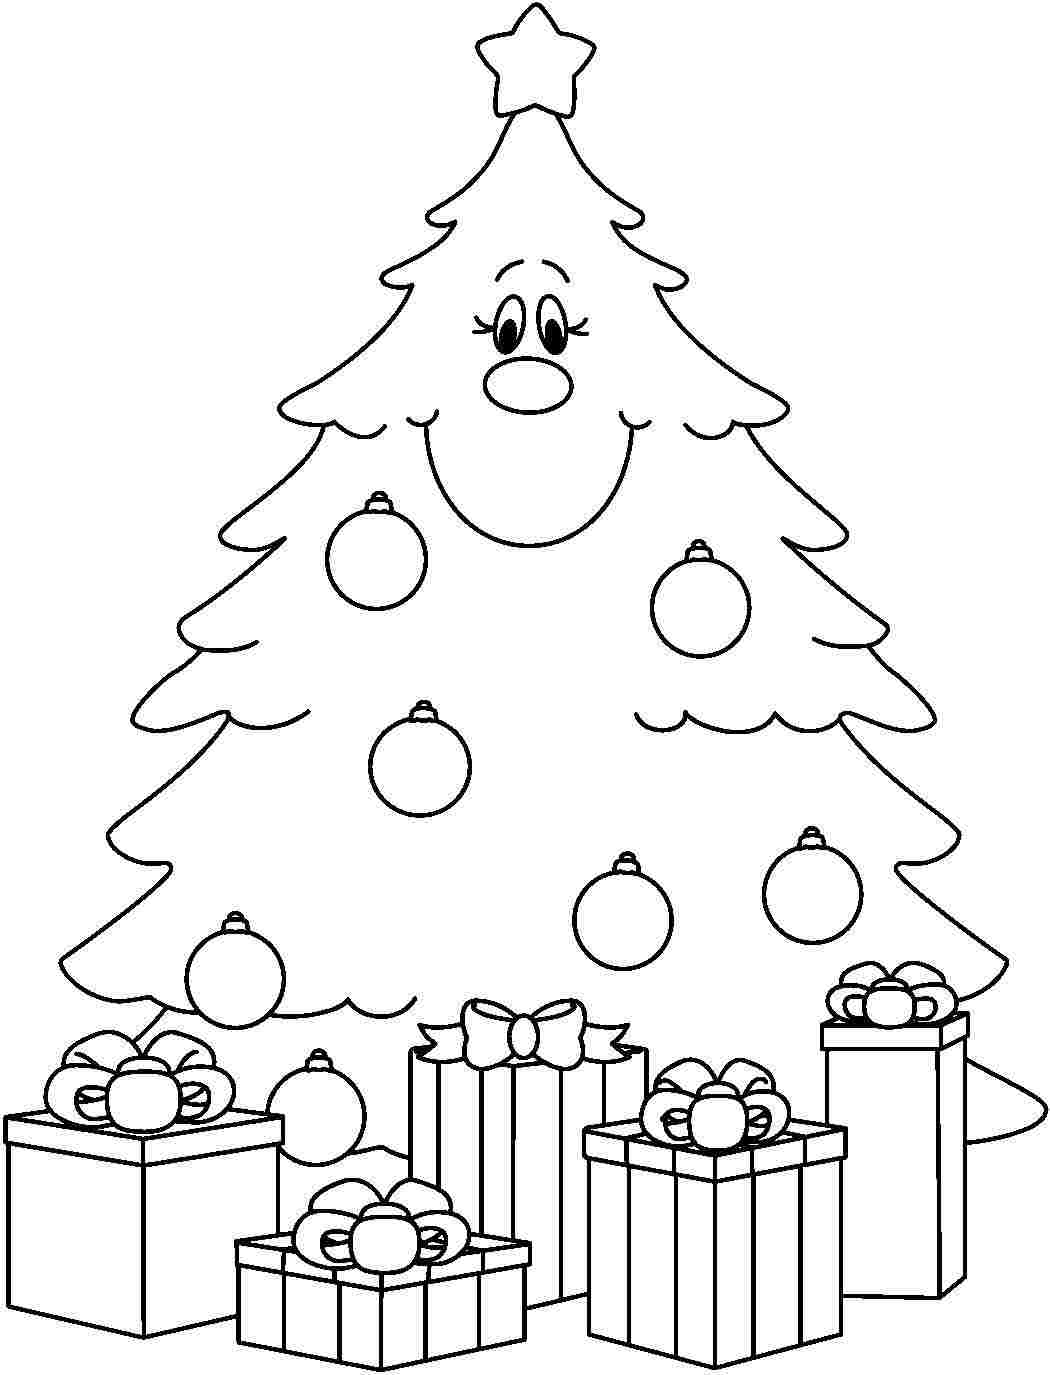 Free Kindergarten Christmas Cliparts, Download Free Clip Art, Free.